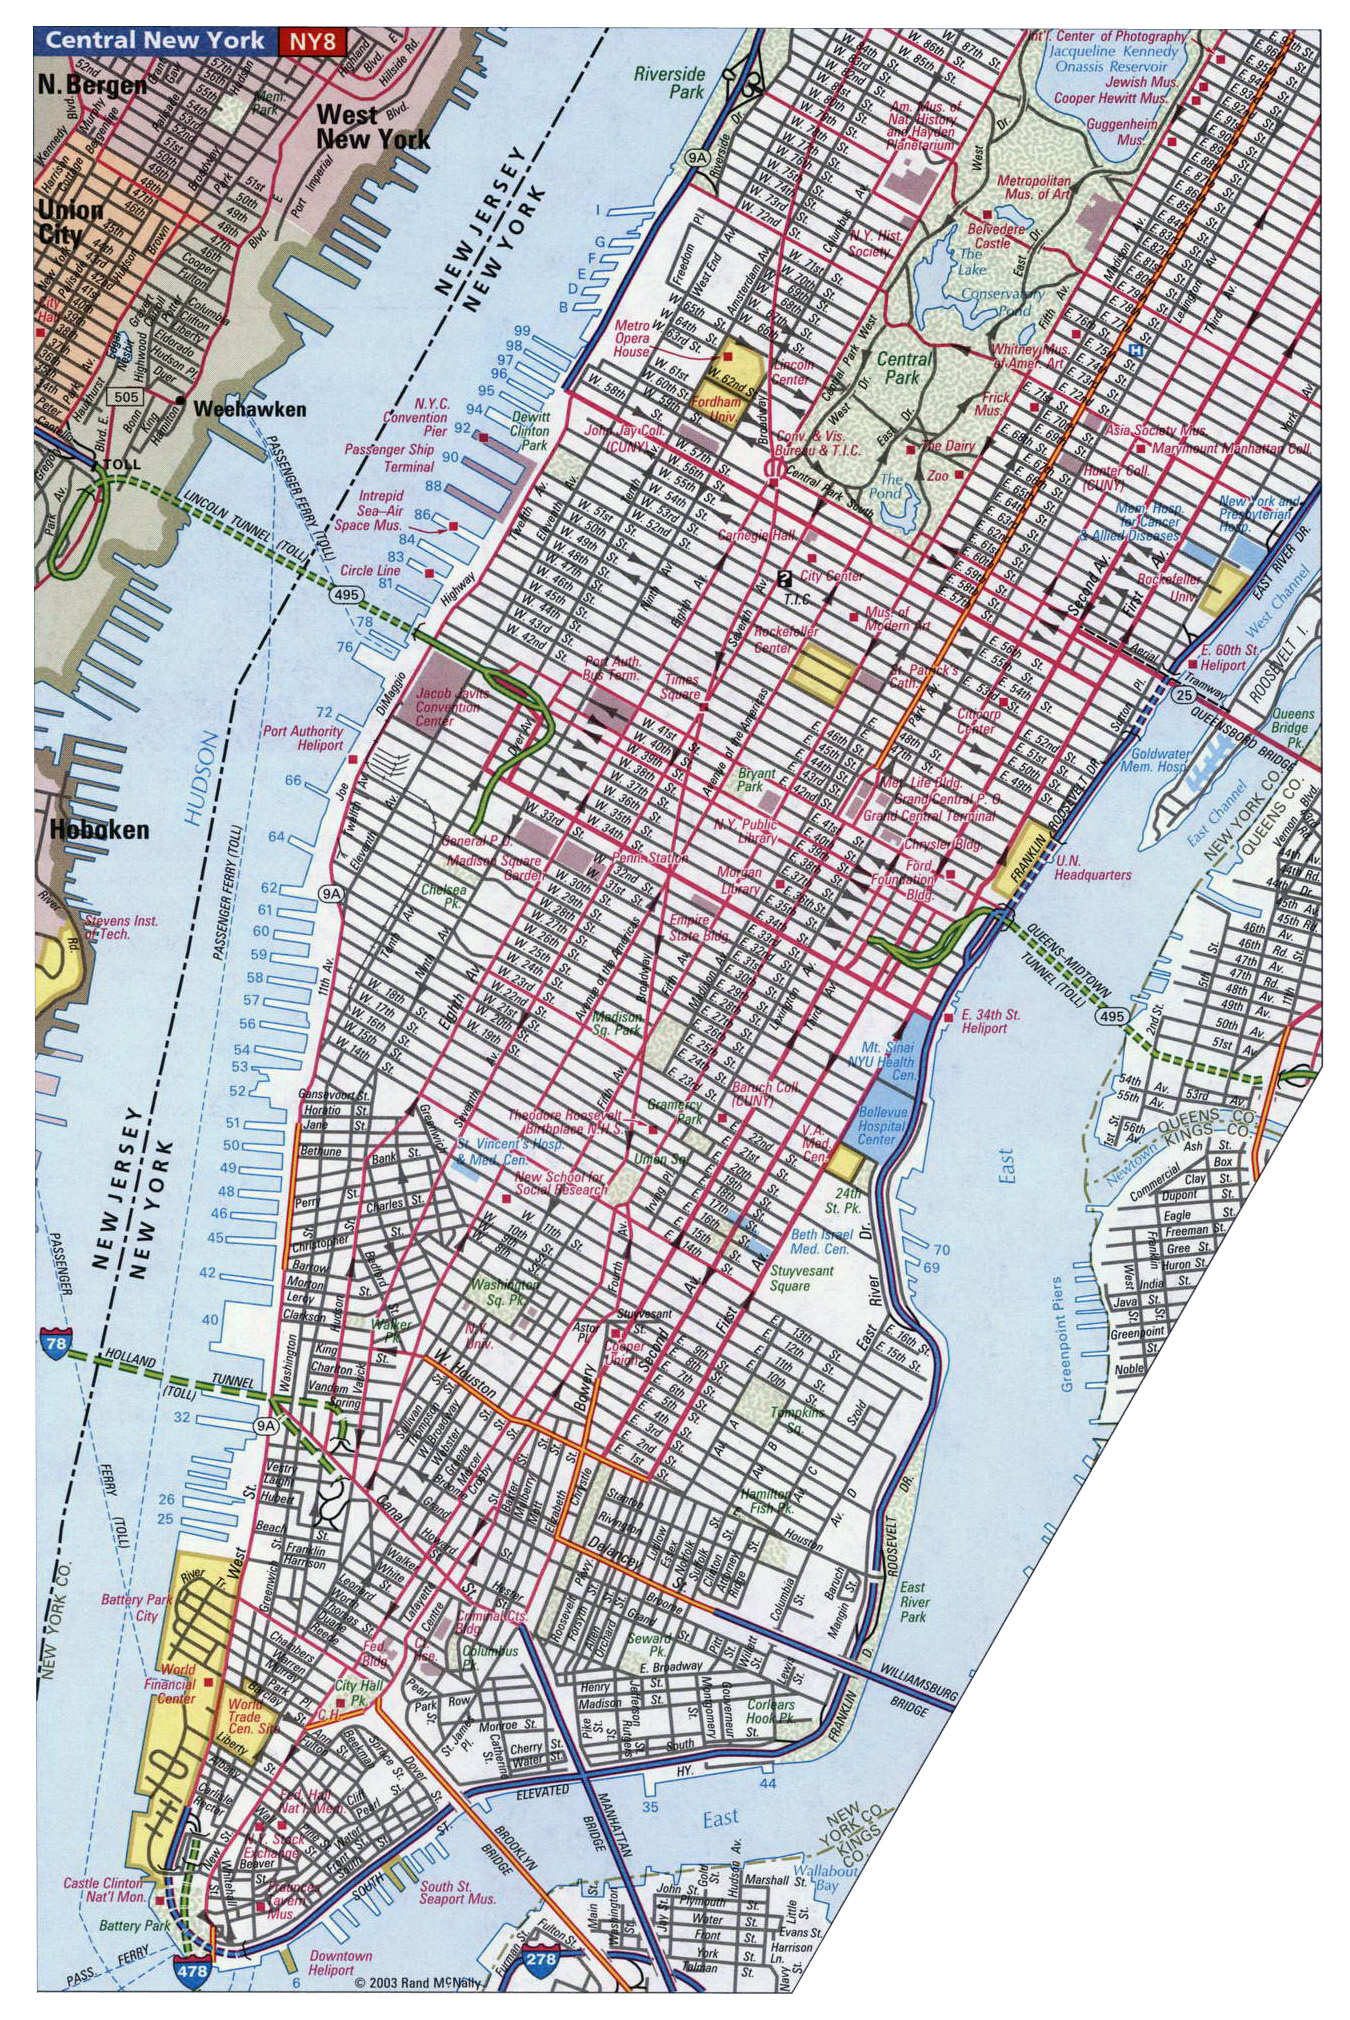 Detailed Road Map Of Manhattan NYC Manhattan NYC Detailed Road - Road map new york